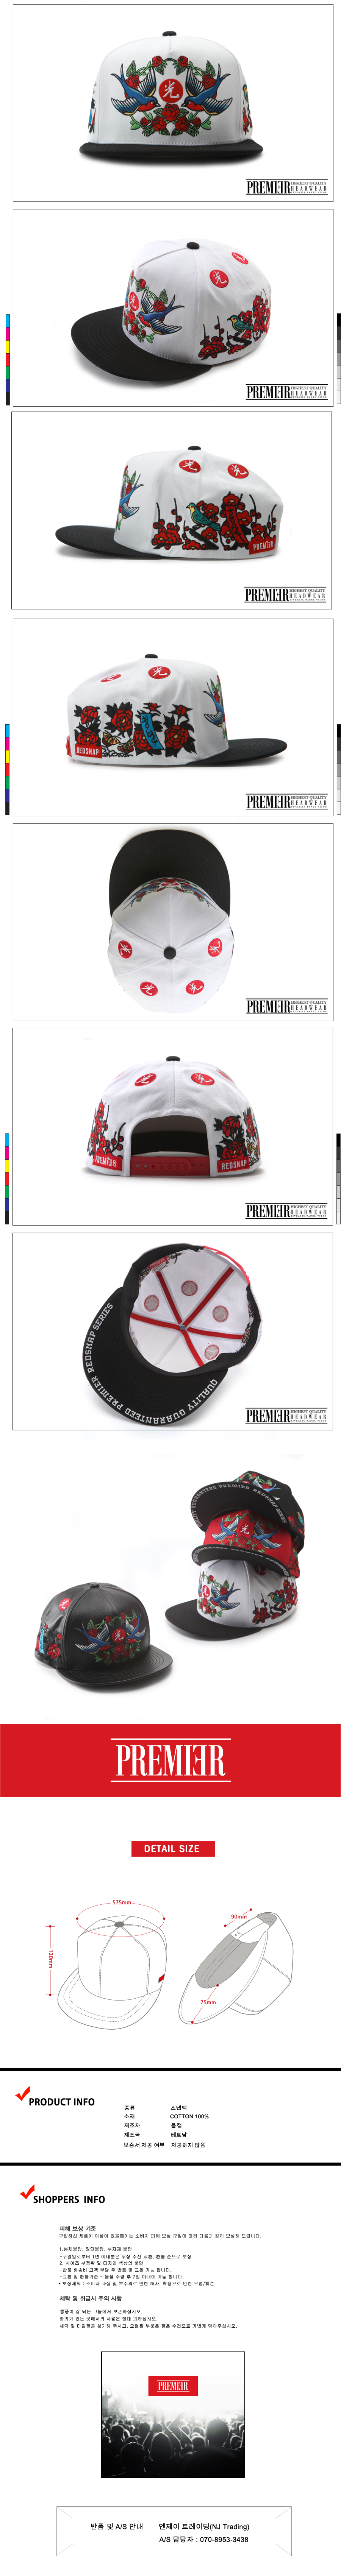 [ PREMIER ] [Premier] Red Snap Hwatu Godori White/Black